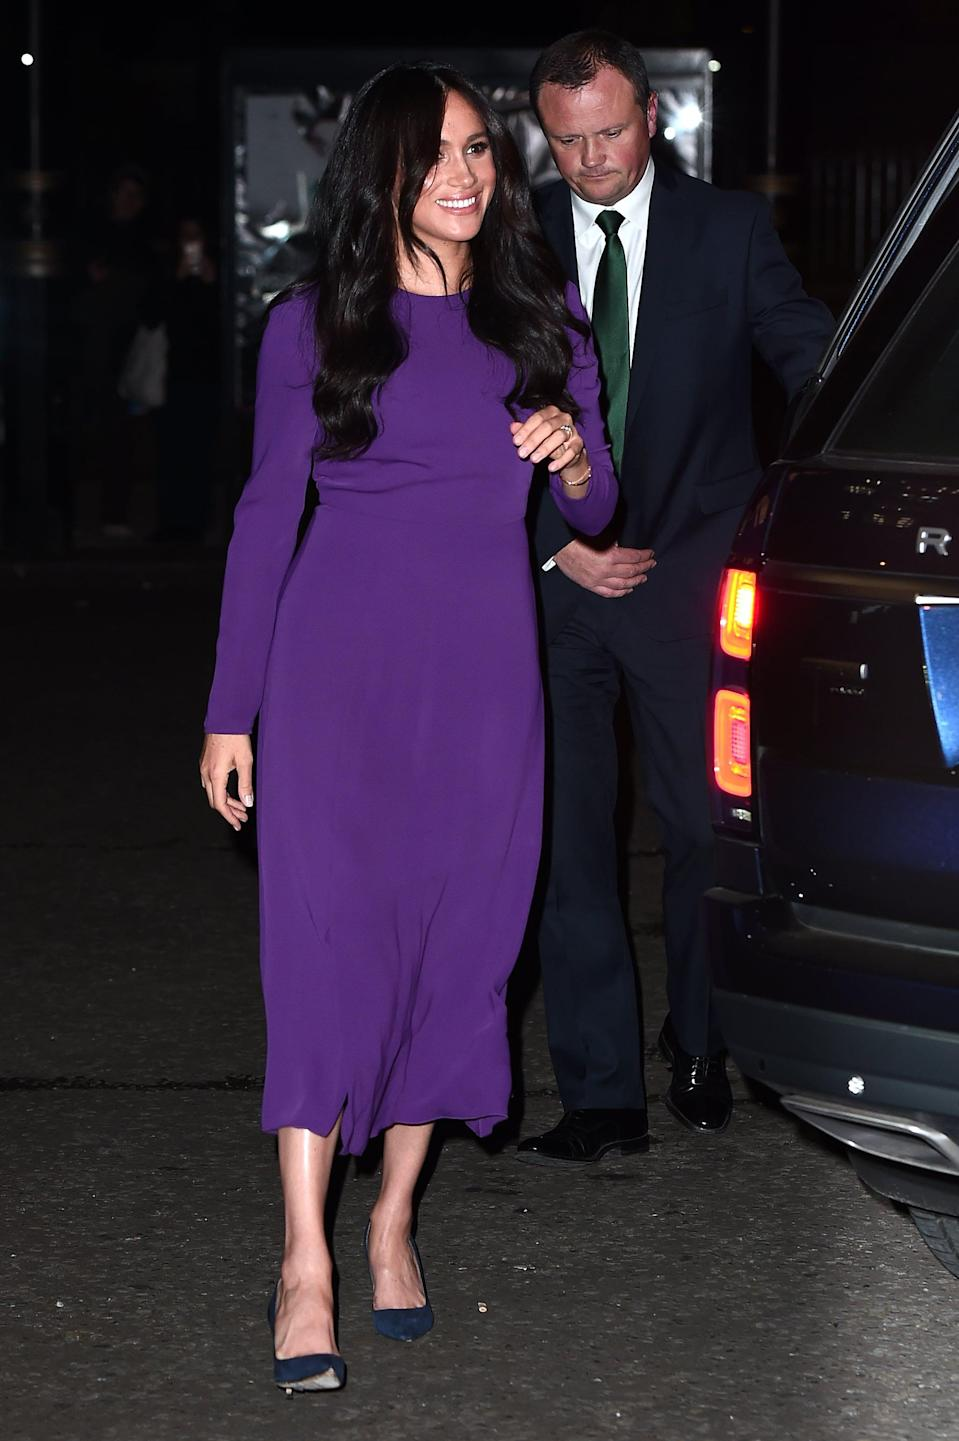 """<p>Meghan brought out <a href=""""https://www.popsugar.com/fashion/meghan-markle-purple-dress-at-one-young-world-summit-46794434"""" class=""""link rapid-noclick-resp"""" rel=""""nofollow noopener"""" target=""""_blank"""" data-ylk=""""slk:this gorgeous purple Aritzia midi dress once again"""">this gorgeous purple Aritzia midi dress once again</a> to attend the One Young World Summit Opening Ceremony at Royal Albert Hall in October 2019.</p>"""